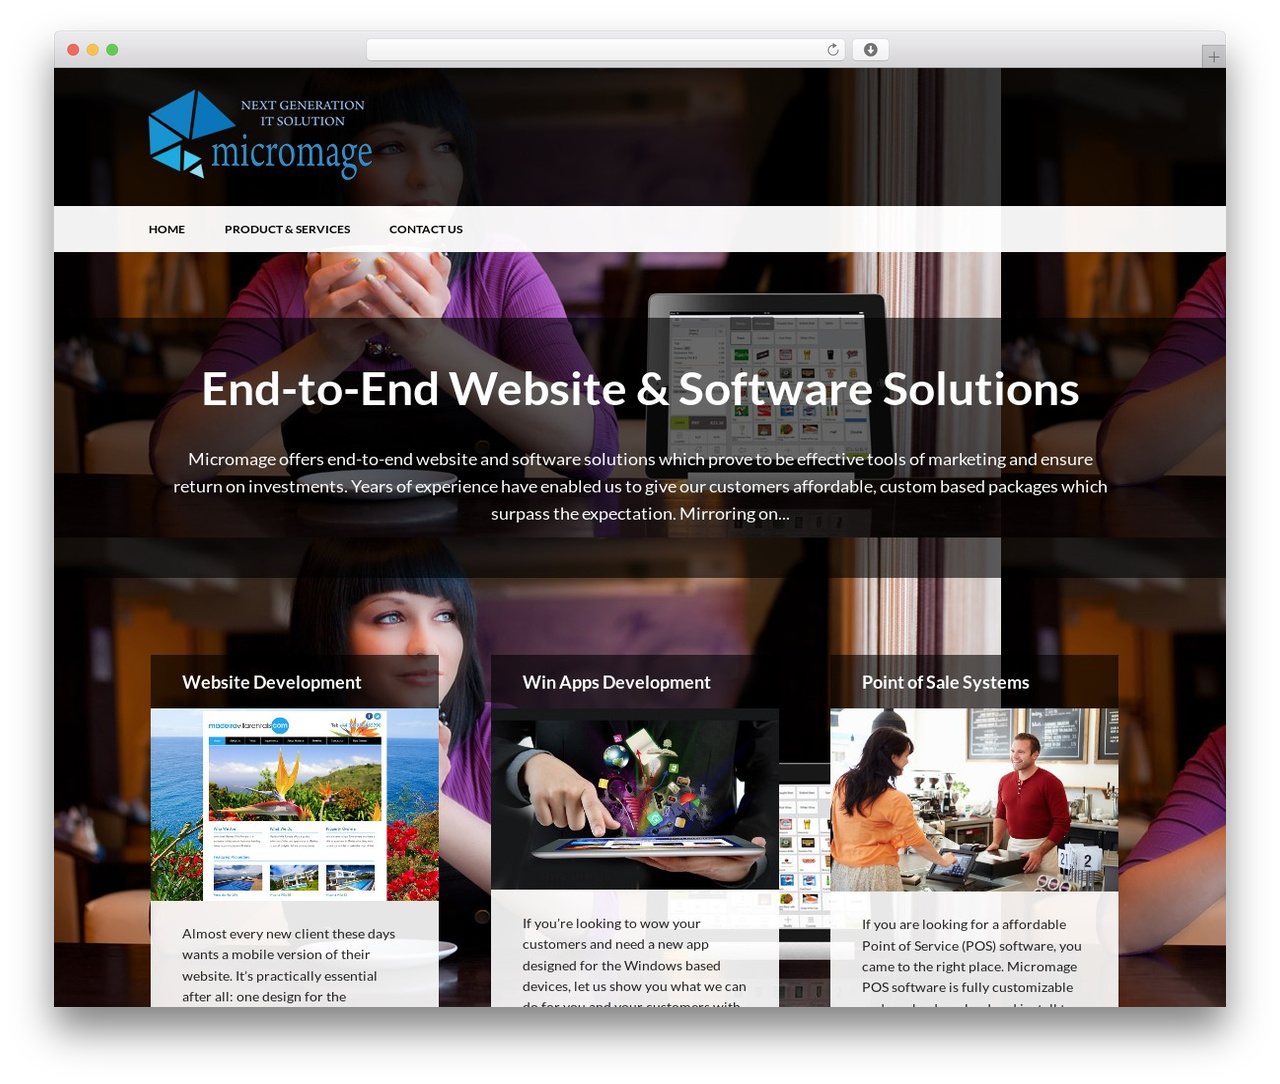 WP Advocate WordPress page template by WP Dev Shed - micromage.com